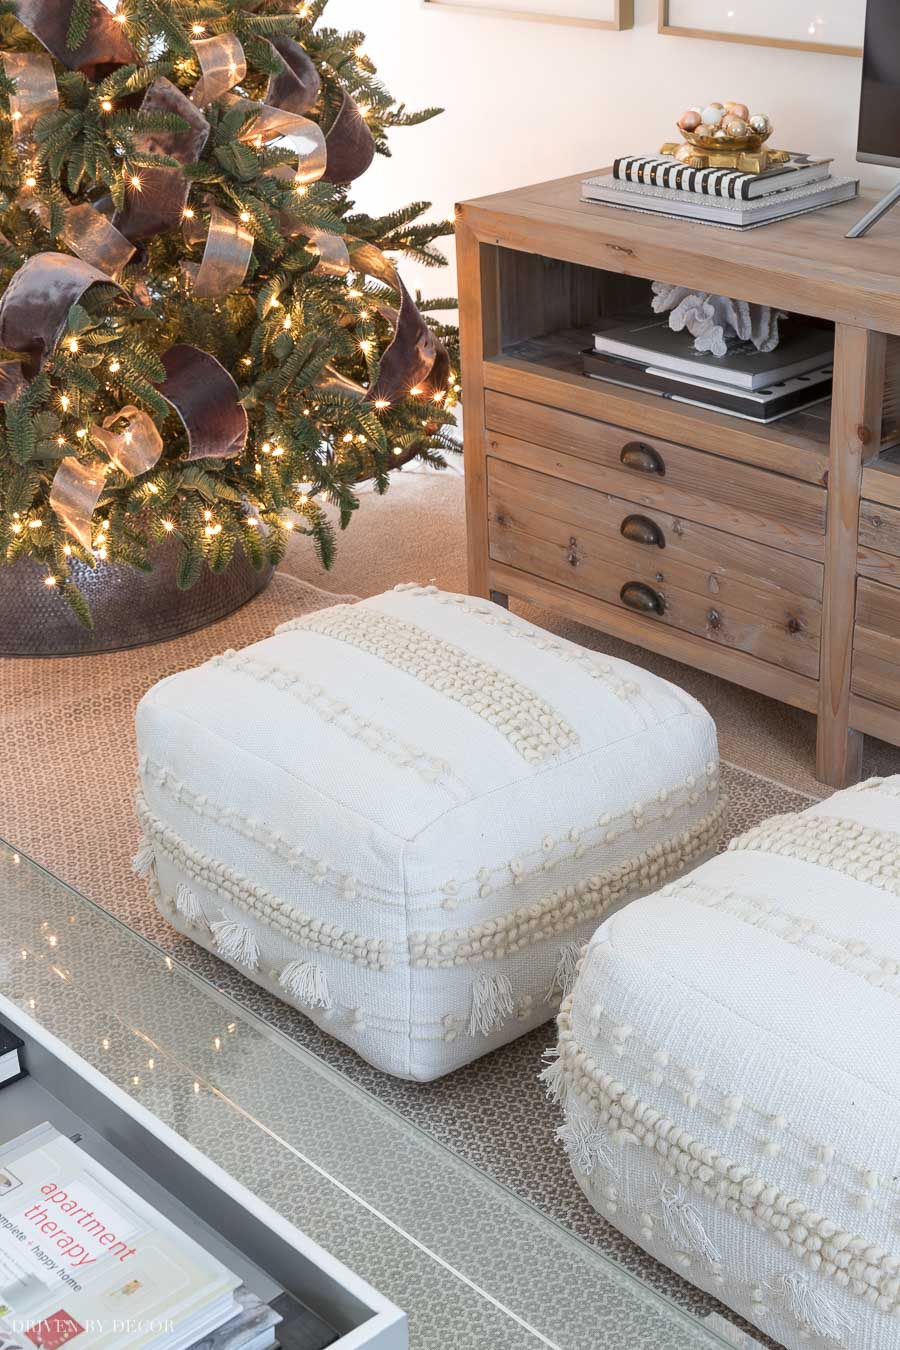 These floor poufs are perfect for extra seating and game nights around the coffee table!